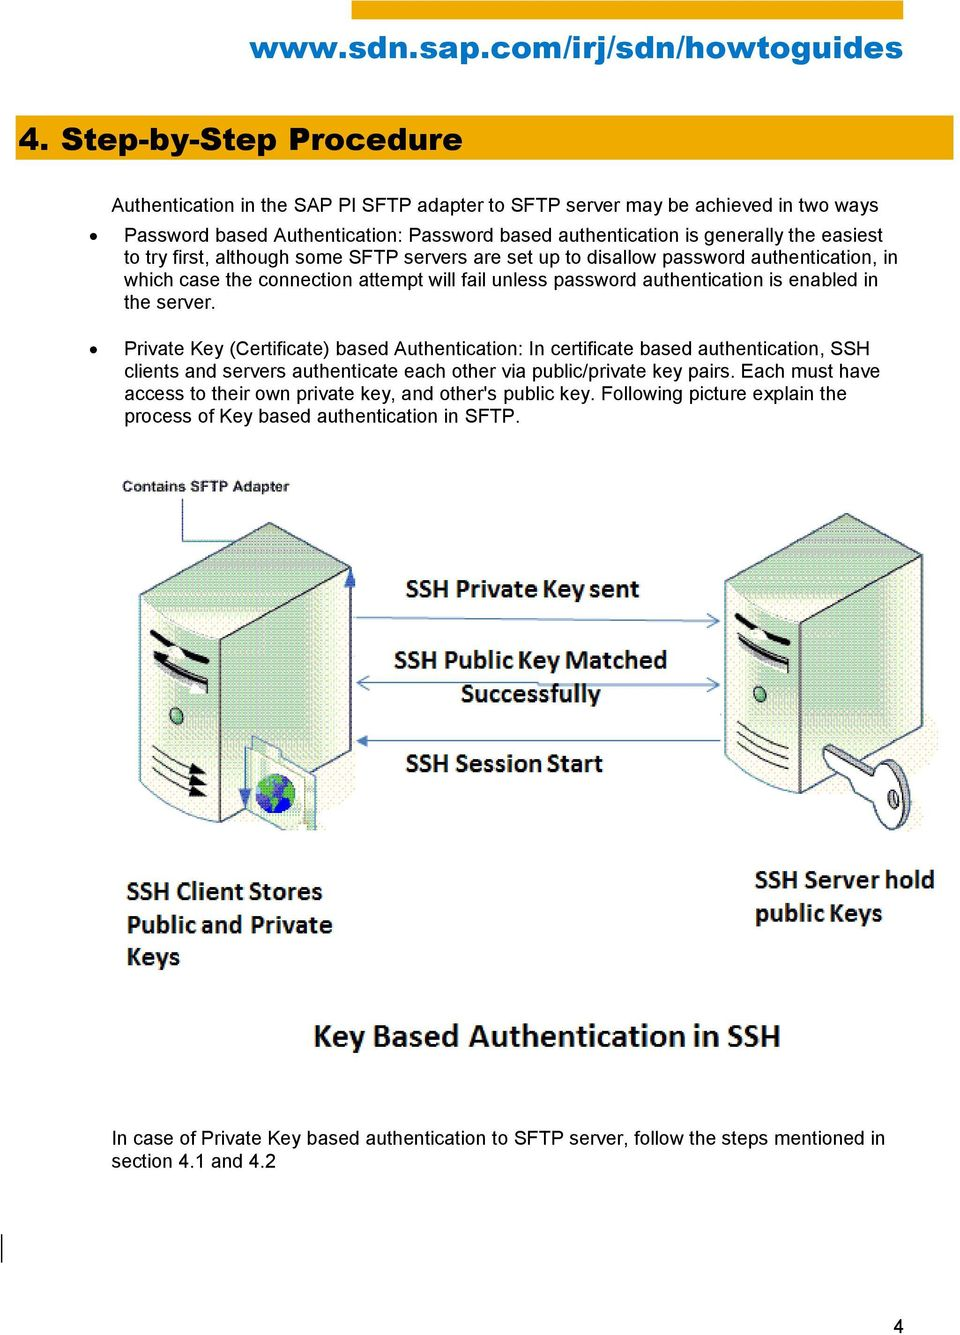 How To Configure SFTP Adapter in SAP PI - PDF